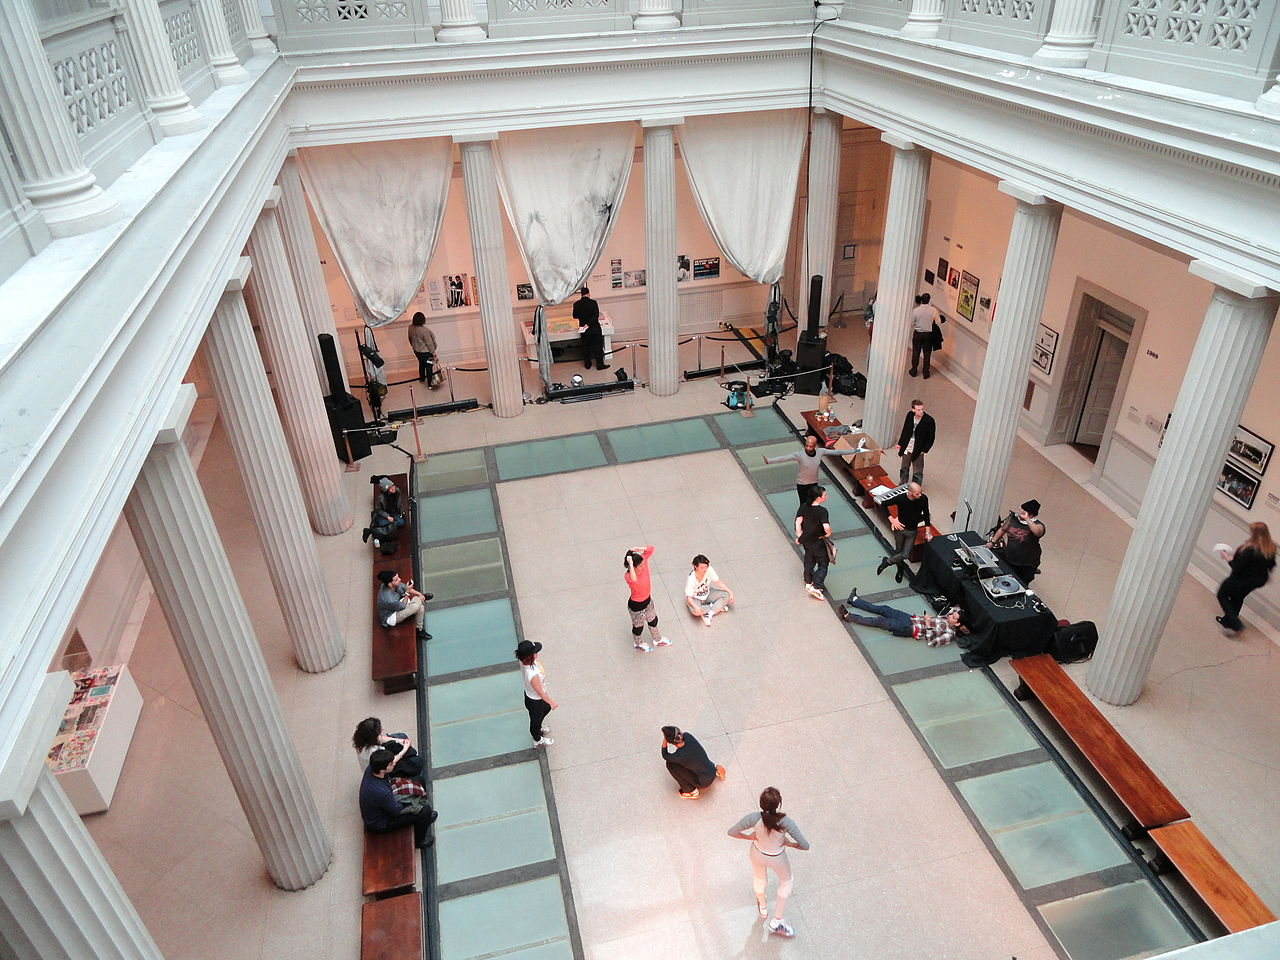 An event in the old Corcoran building (photo by Daderot/Wikimedia Commons)